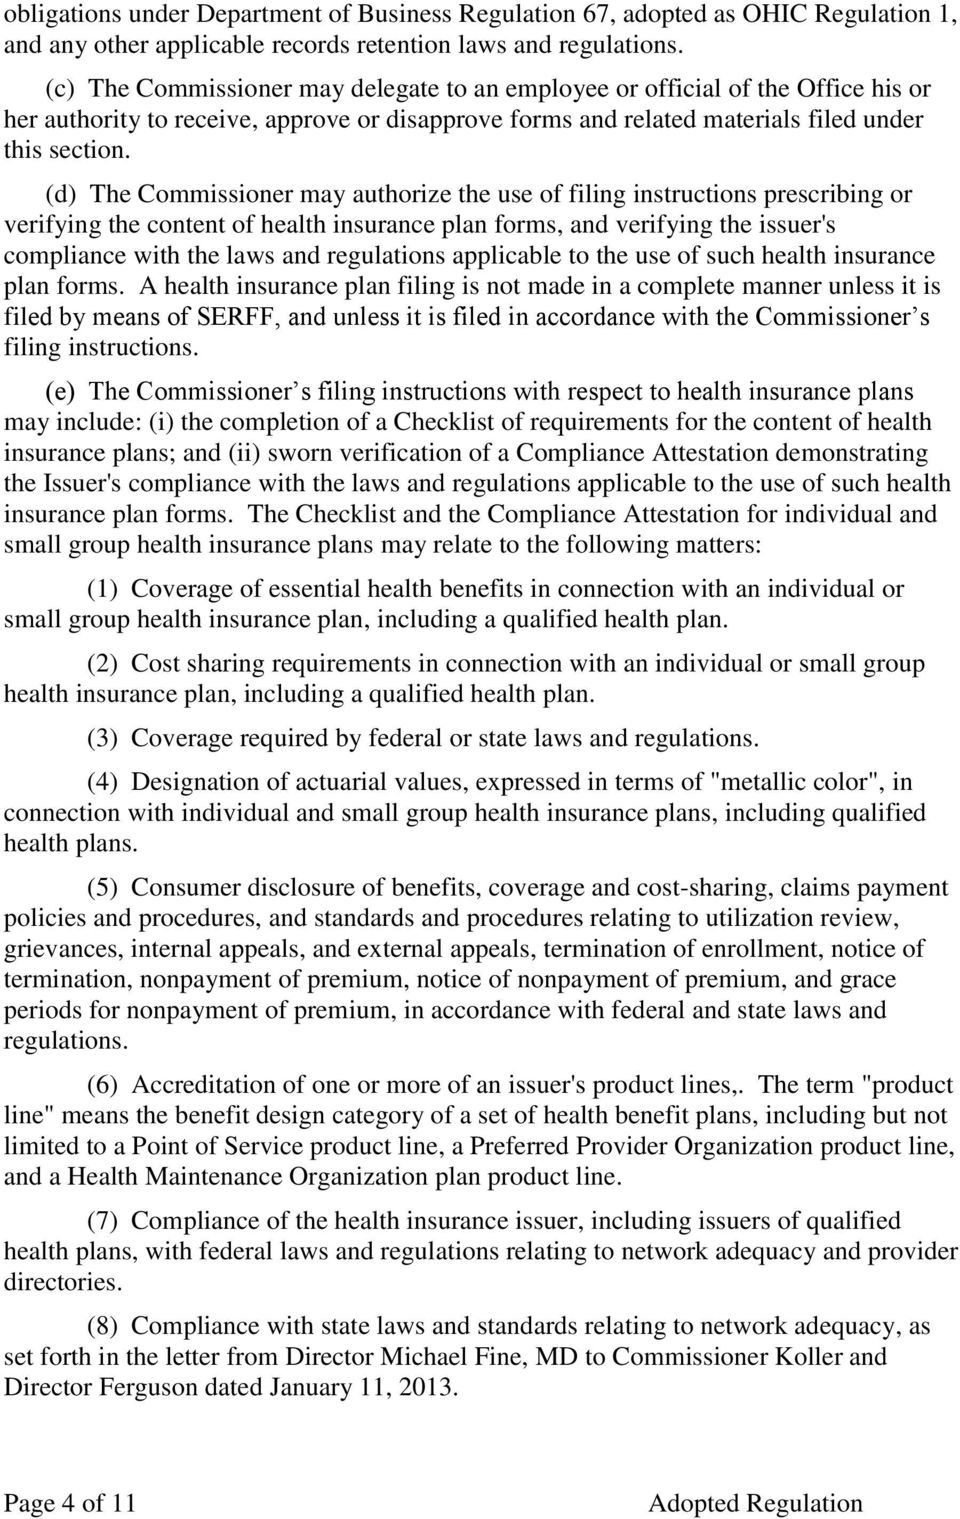 (d) The Commissioner may authorize the use of filing instructions prescribing or verifying the content of health insurance plan forms, and verifying the issuer's compliance with the laws and